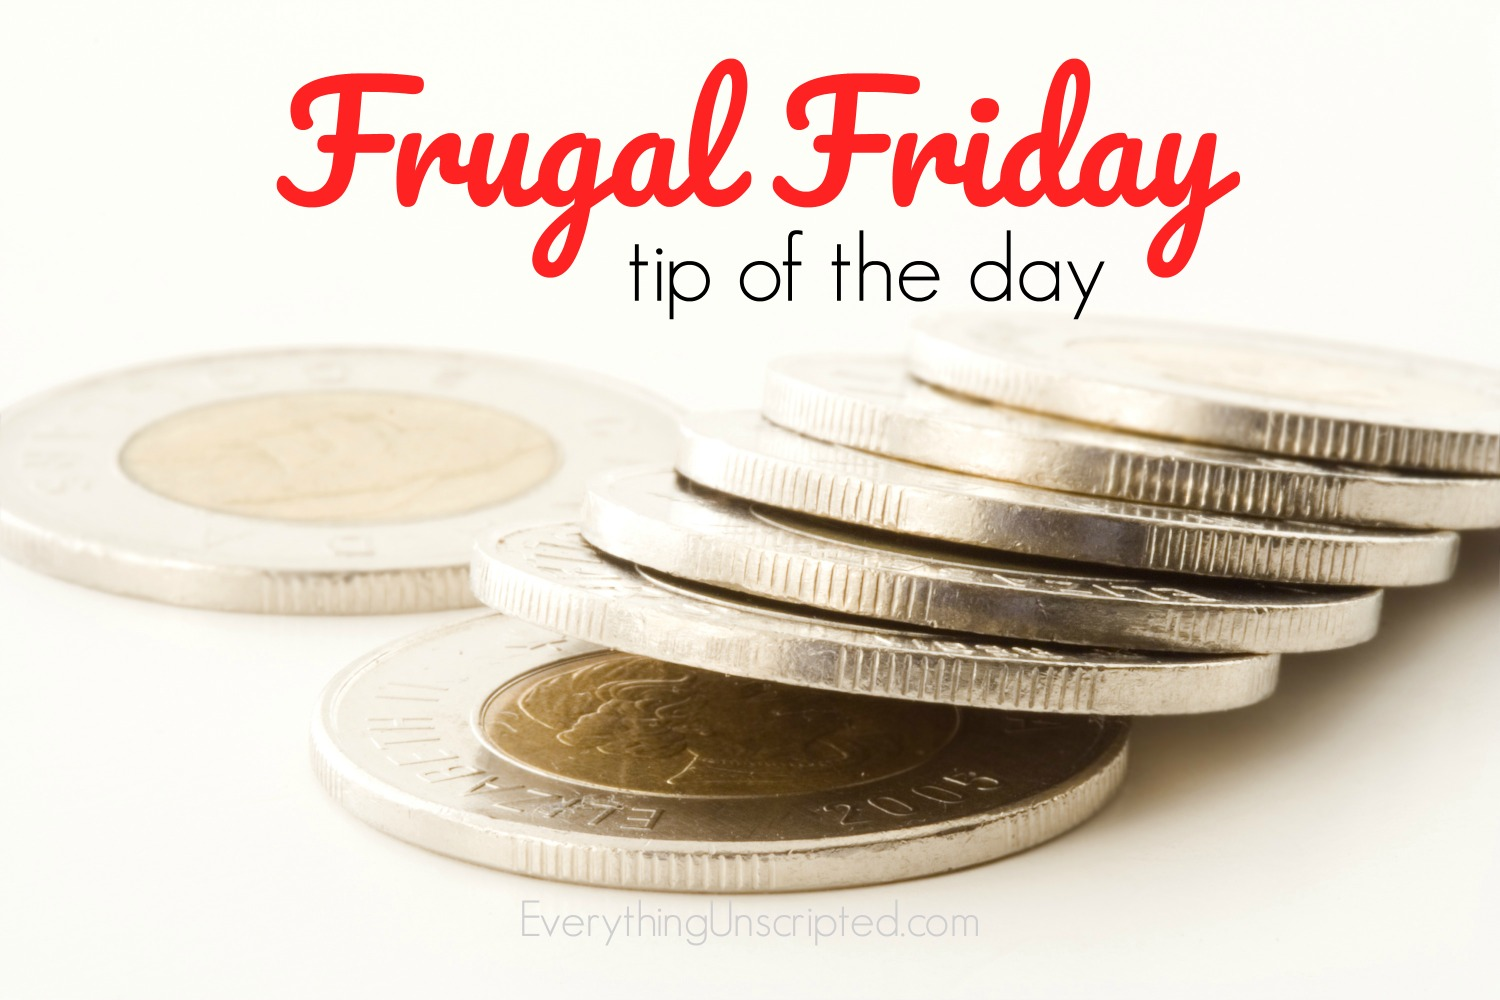 Frugal Friday Everything Unscripted